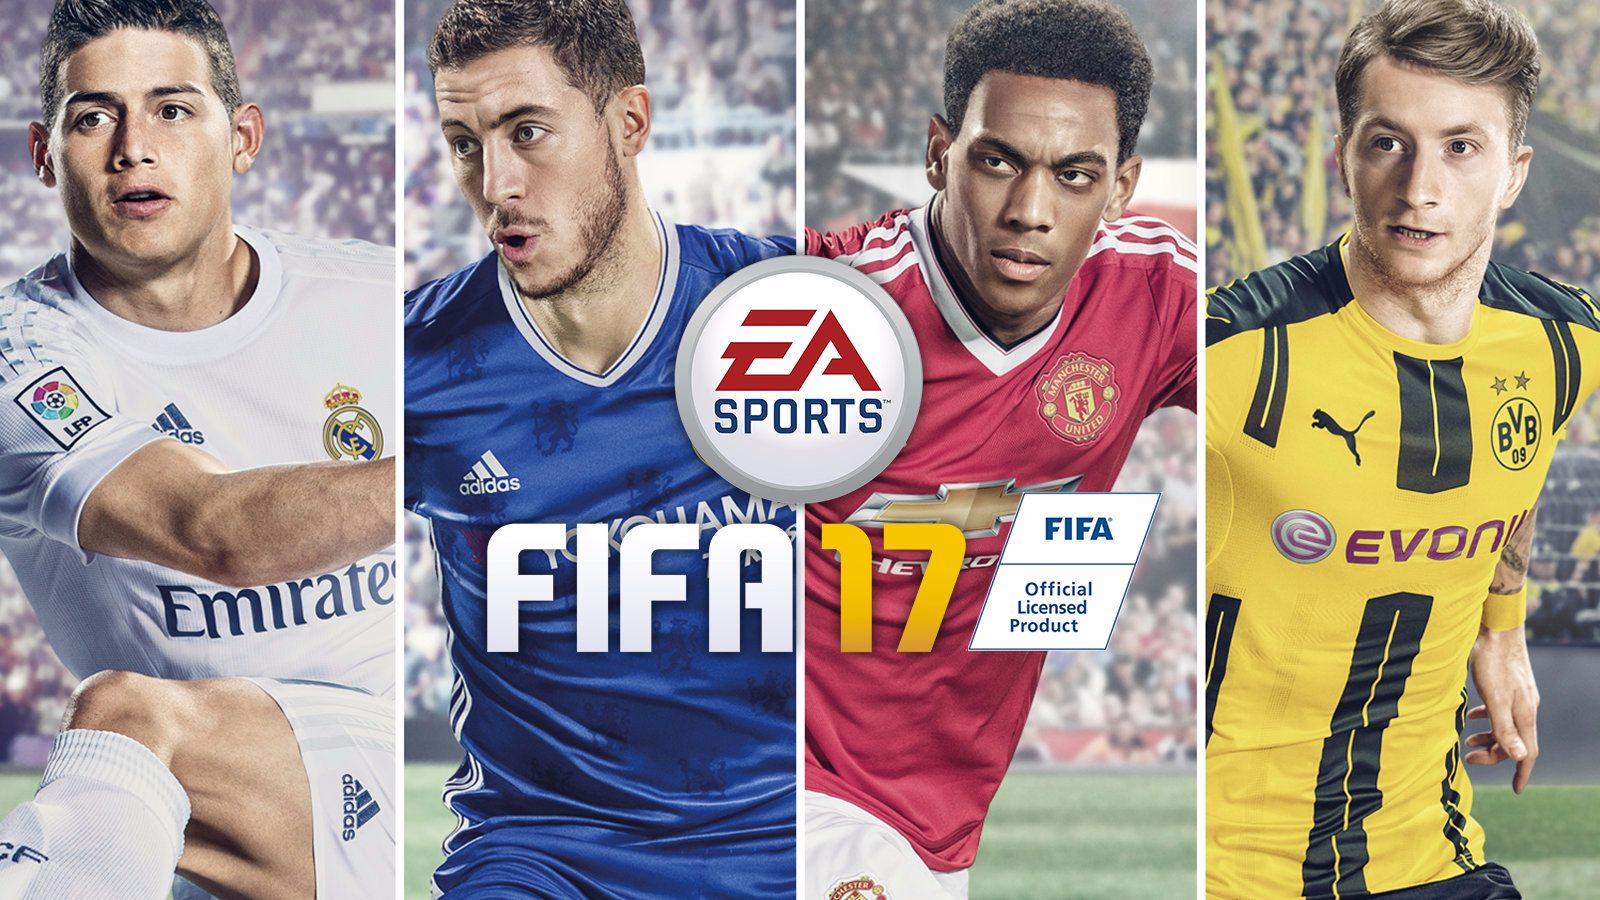 fifa-17-crack-patch-and-cd-key-generator-full-version-download-compressed